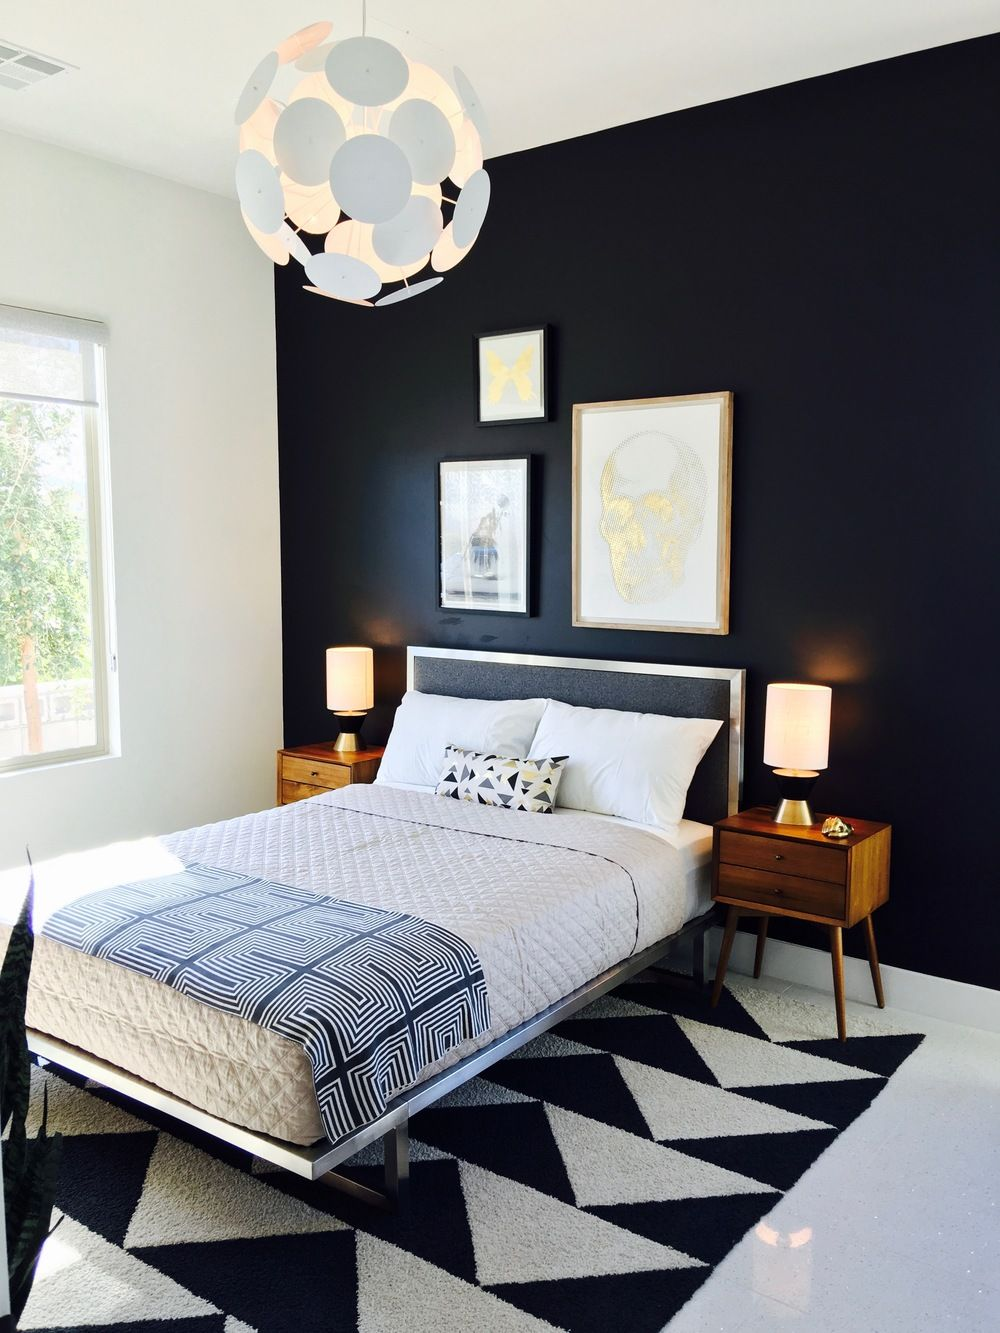 Modern Bedroom Mid Century Bedroom Black And White Bedroom Flor Tiles Austin Bedroom